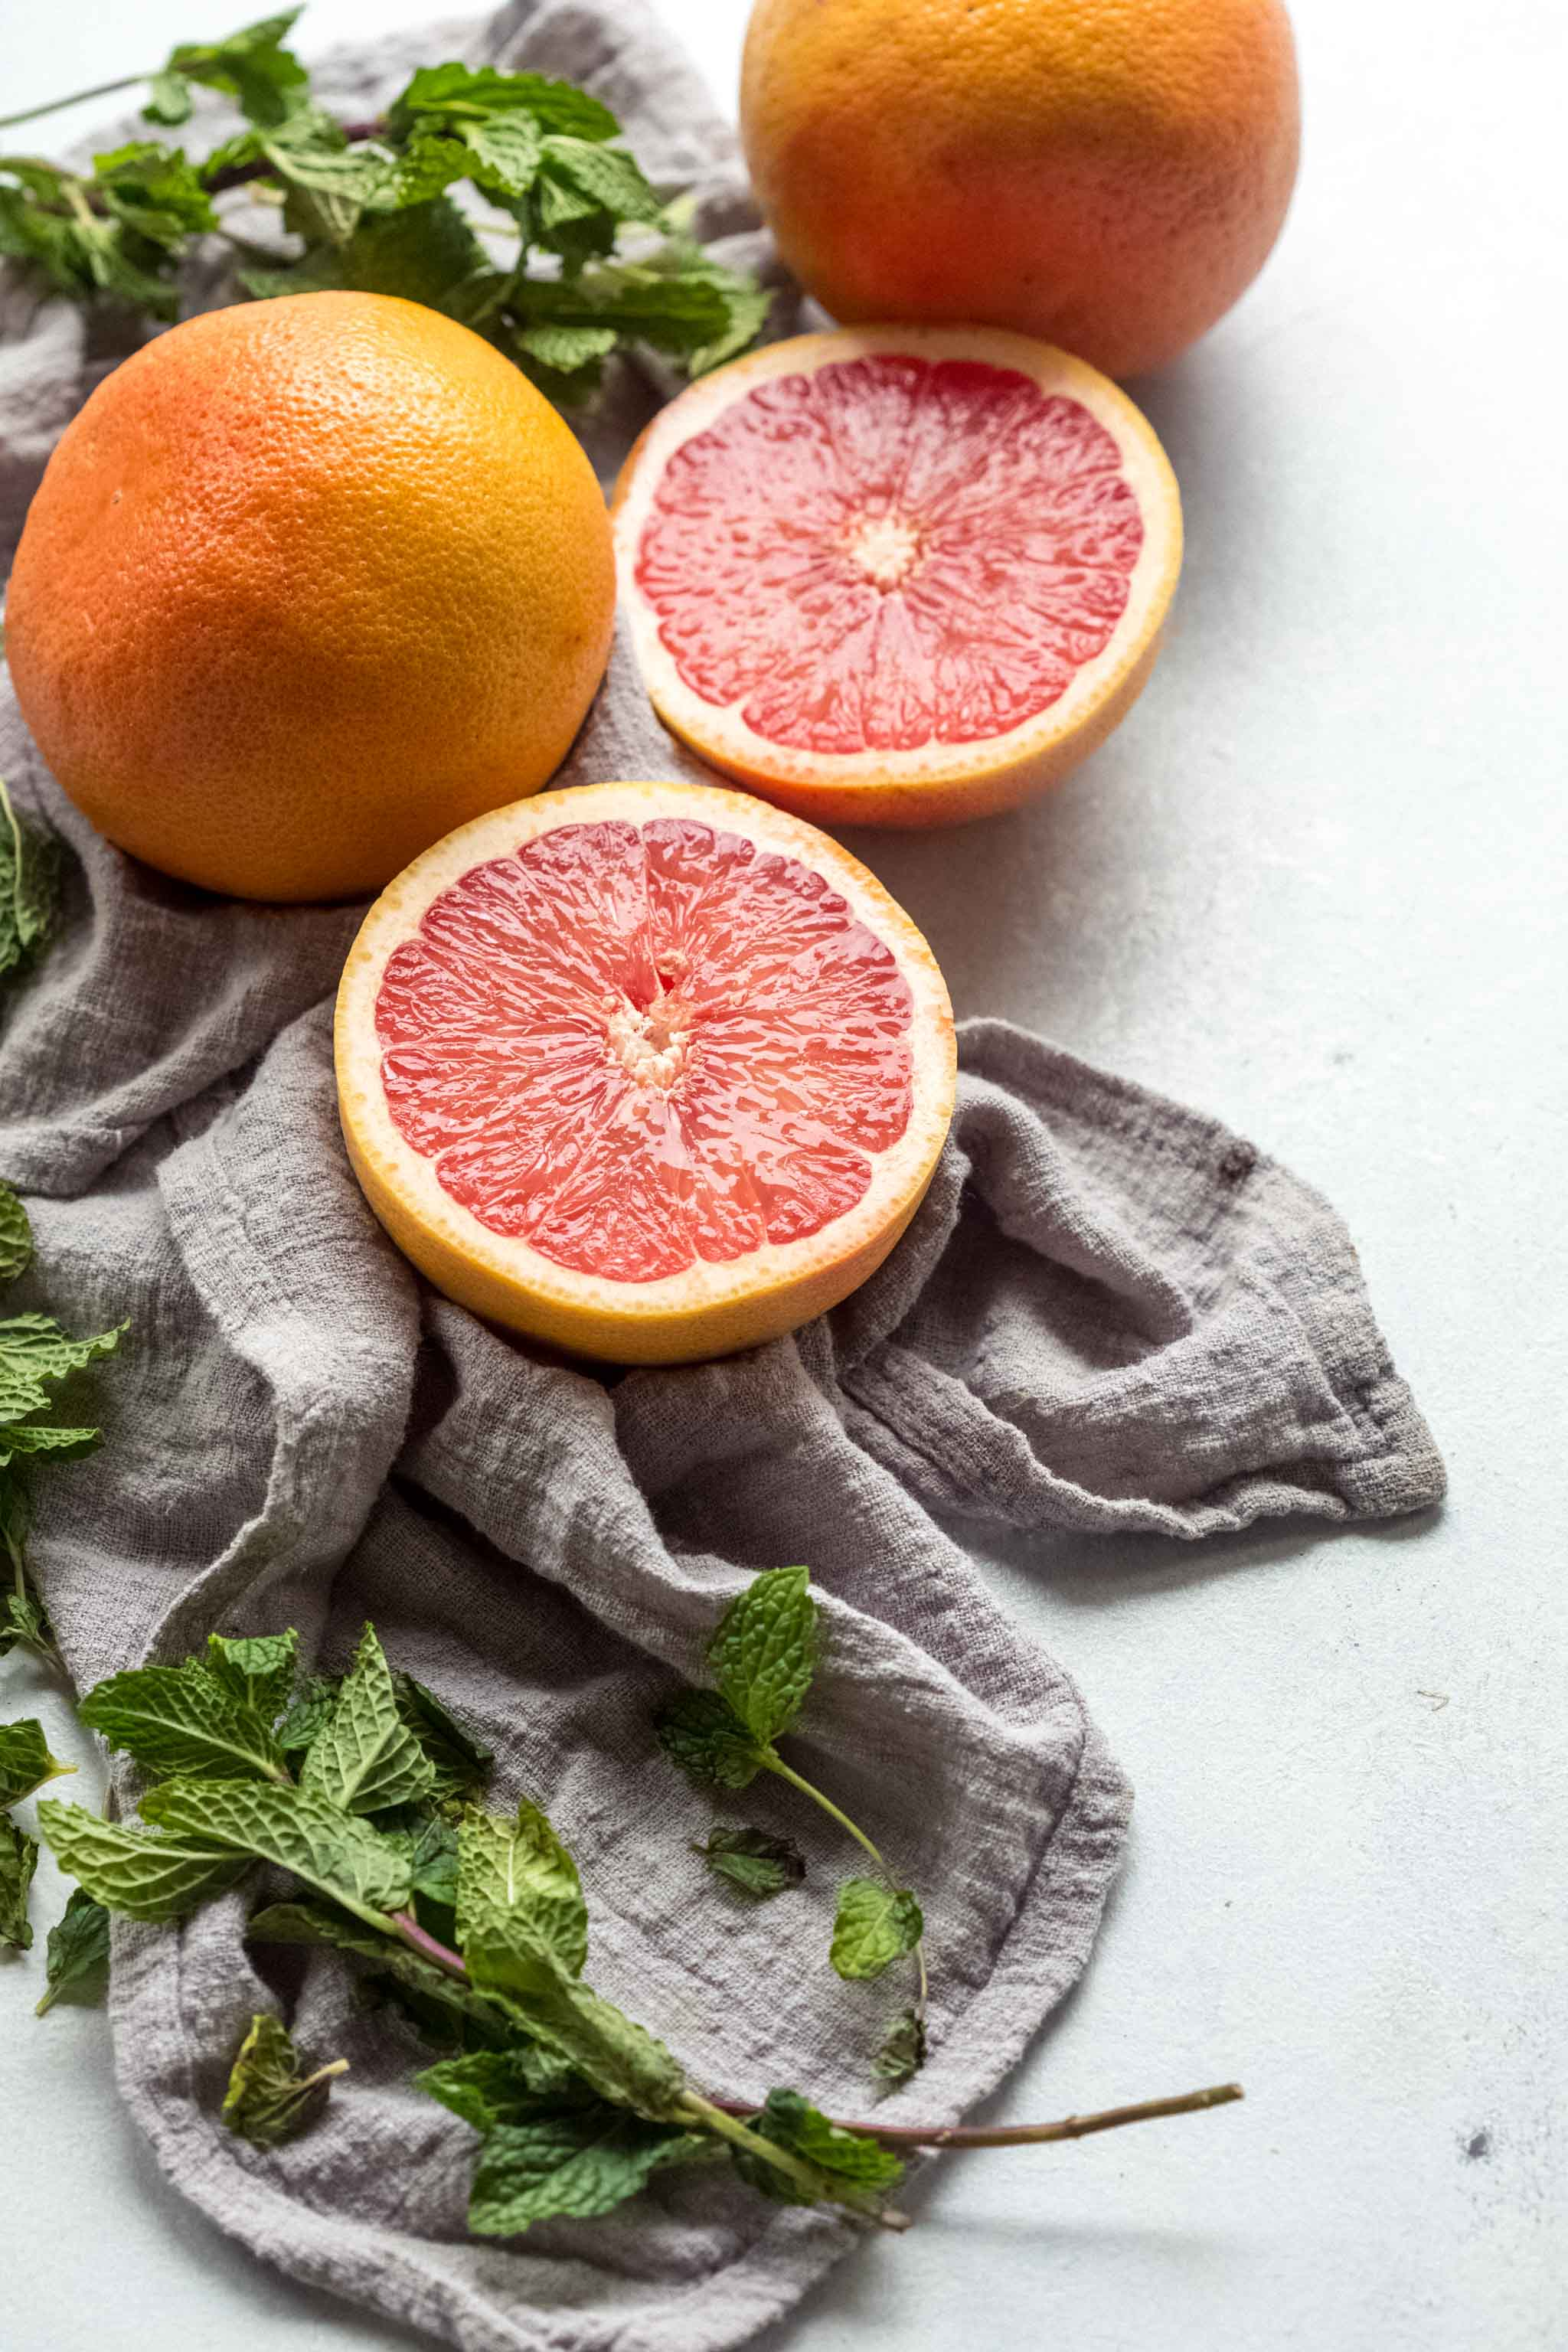 Grapefruits and mint. Ingredients for Grapefruit Mint Juice.